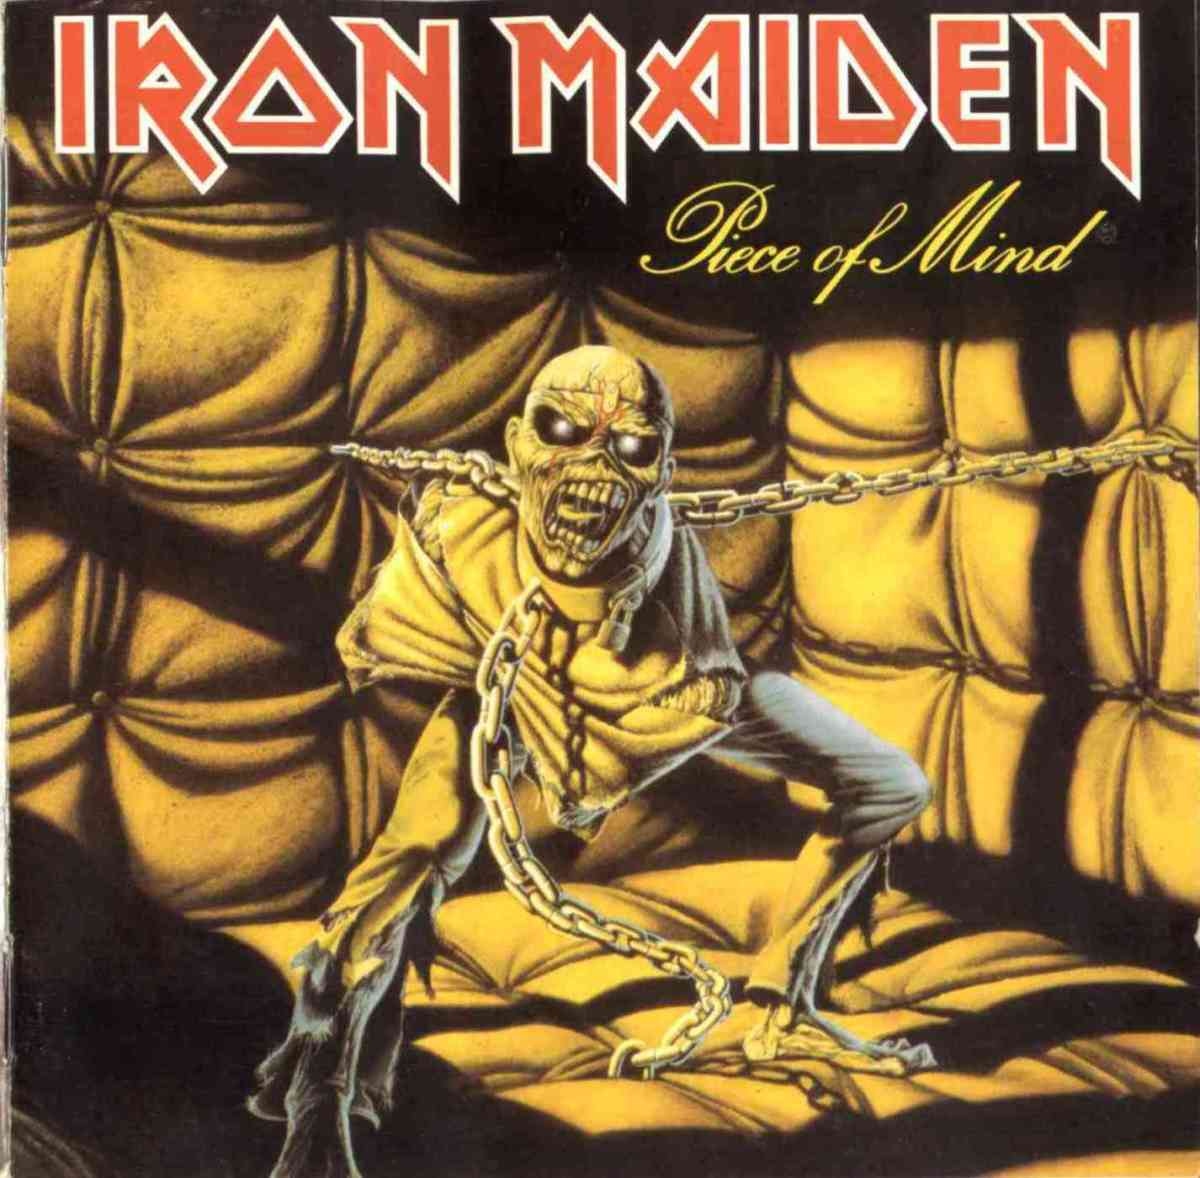 Discografia Iron Maiden - Episódio 05: 1983 – Piece Of Mind